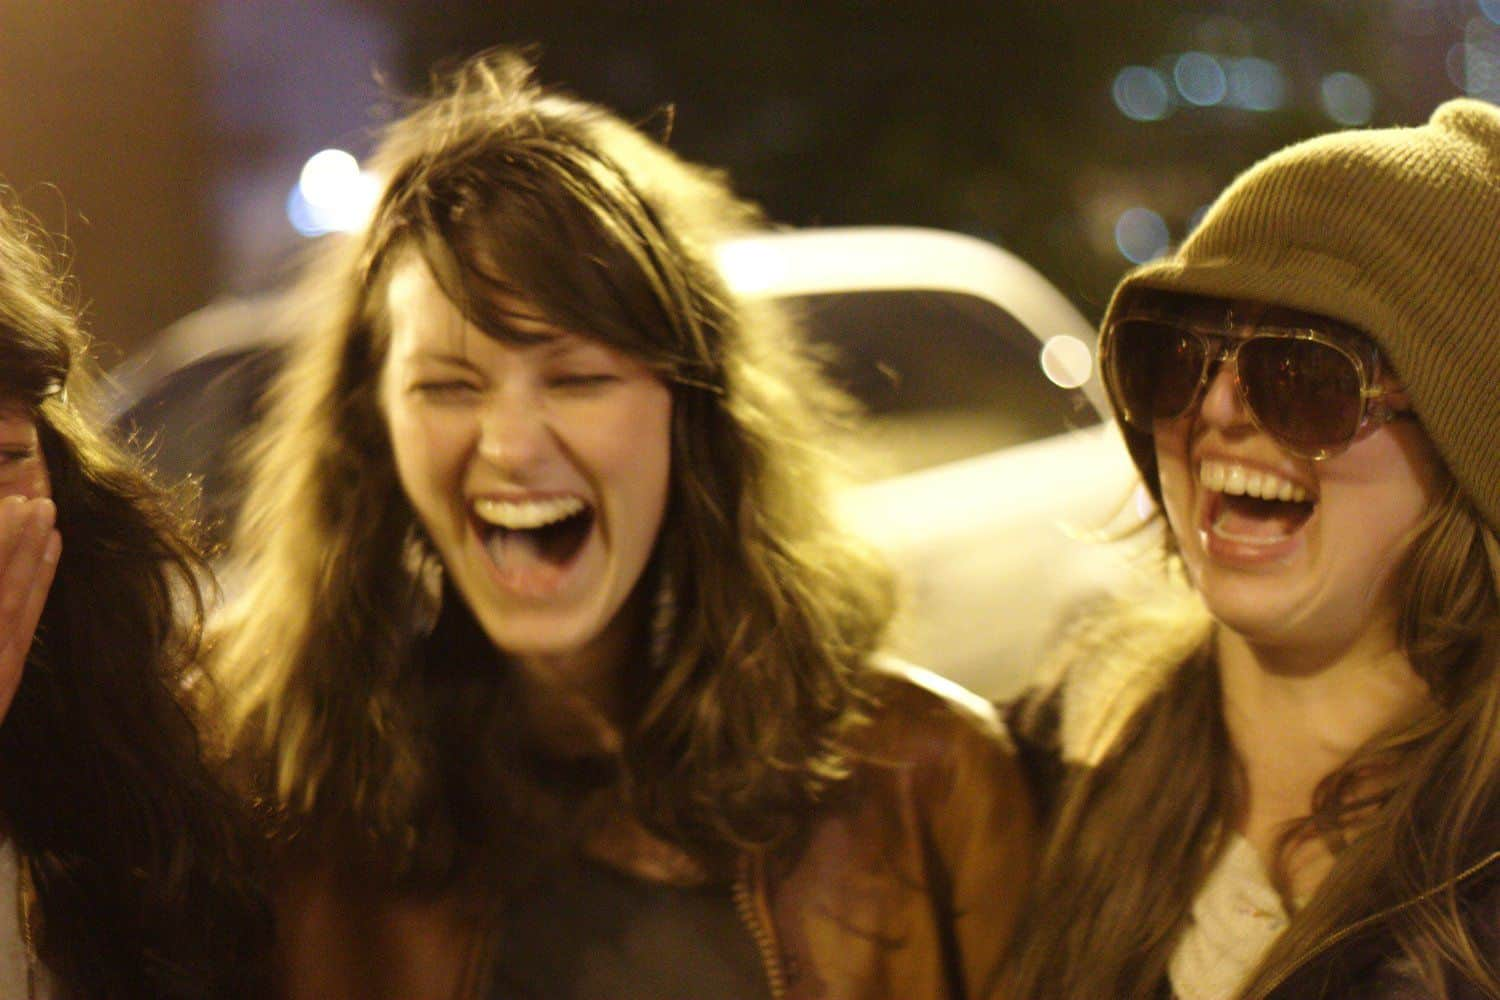 PSYCHOLOGICAL BENEFITS OF LAUGHTER